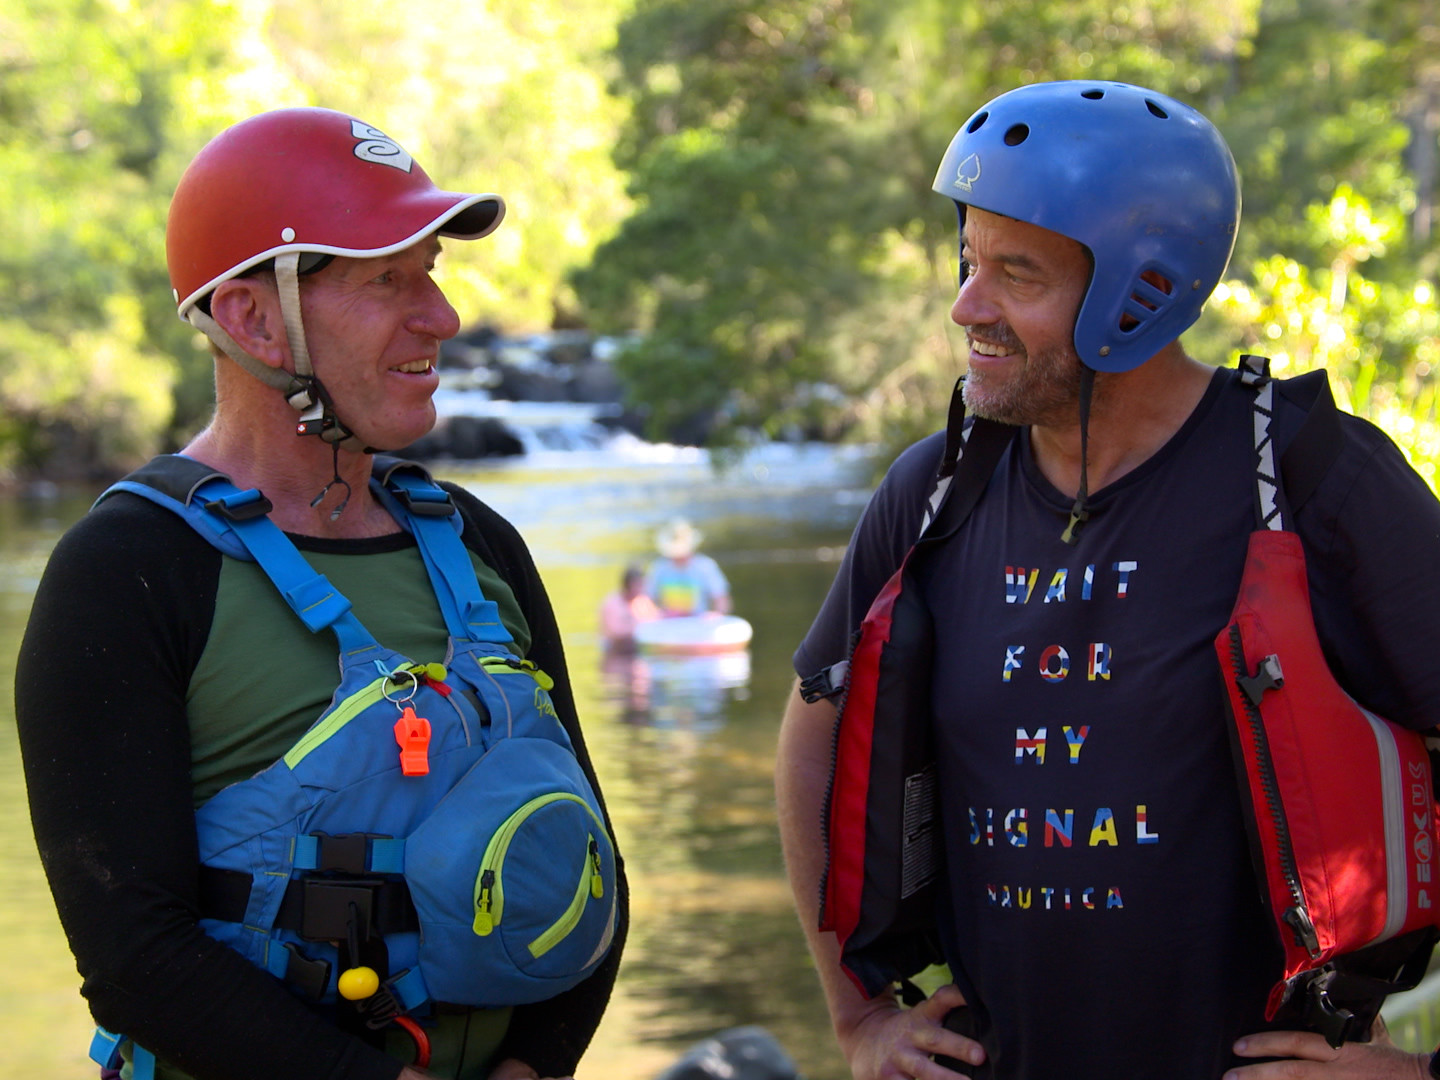 Adam Spencer and Brian Kilby wearing kayaking gear